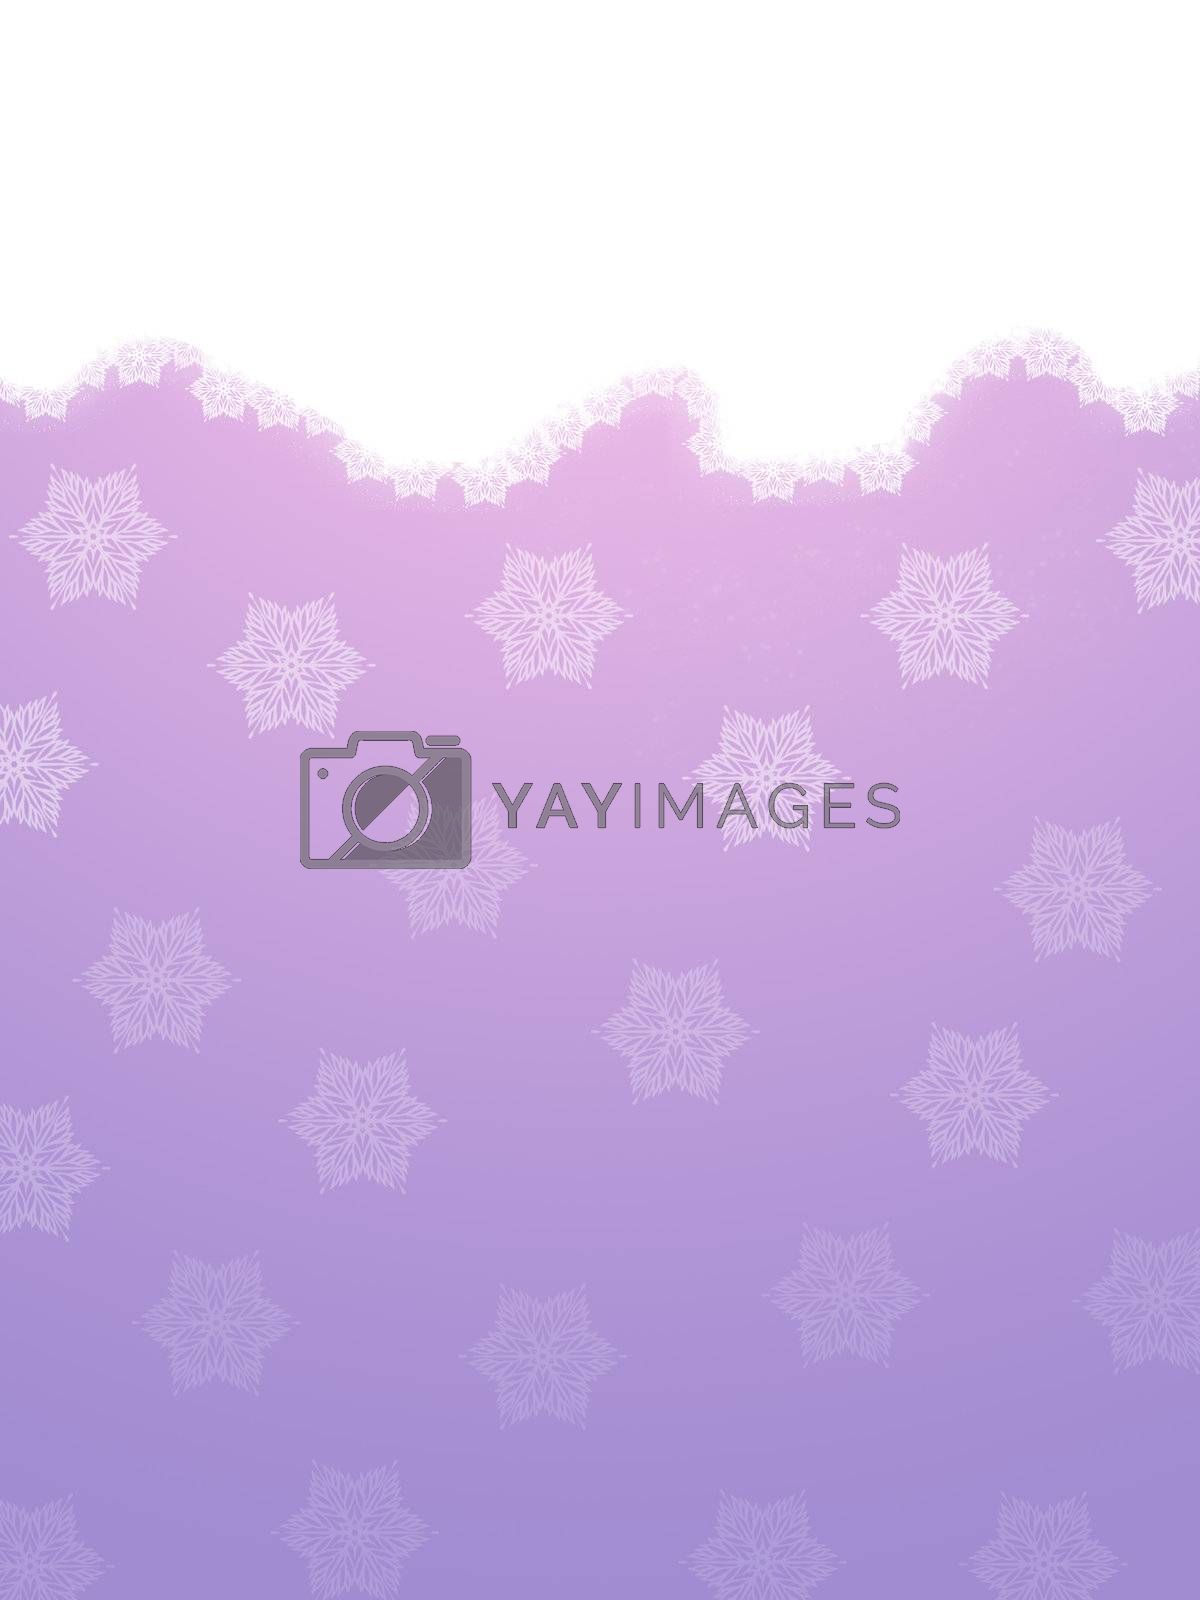 Snowflakes on a violet background. Christmas snow.